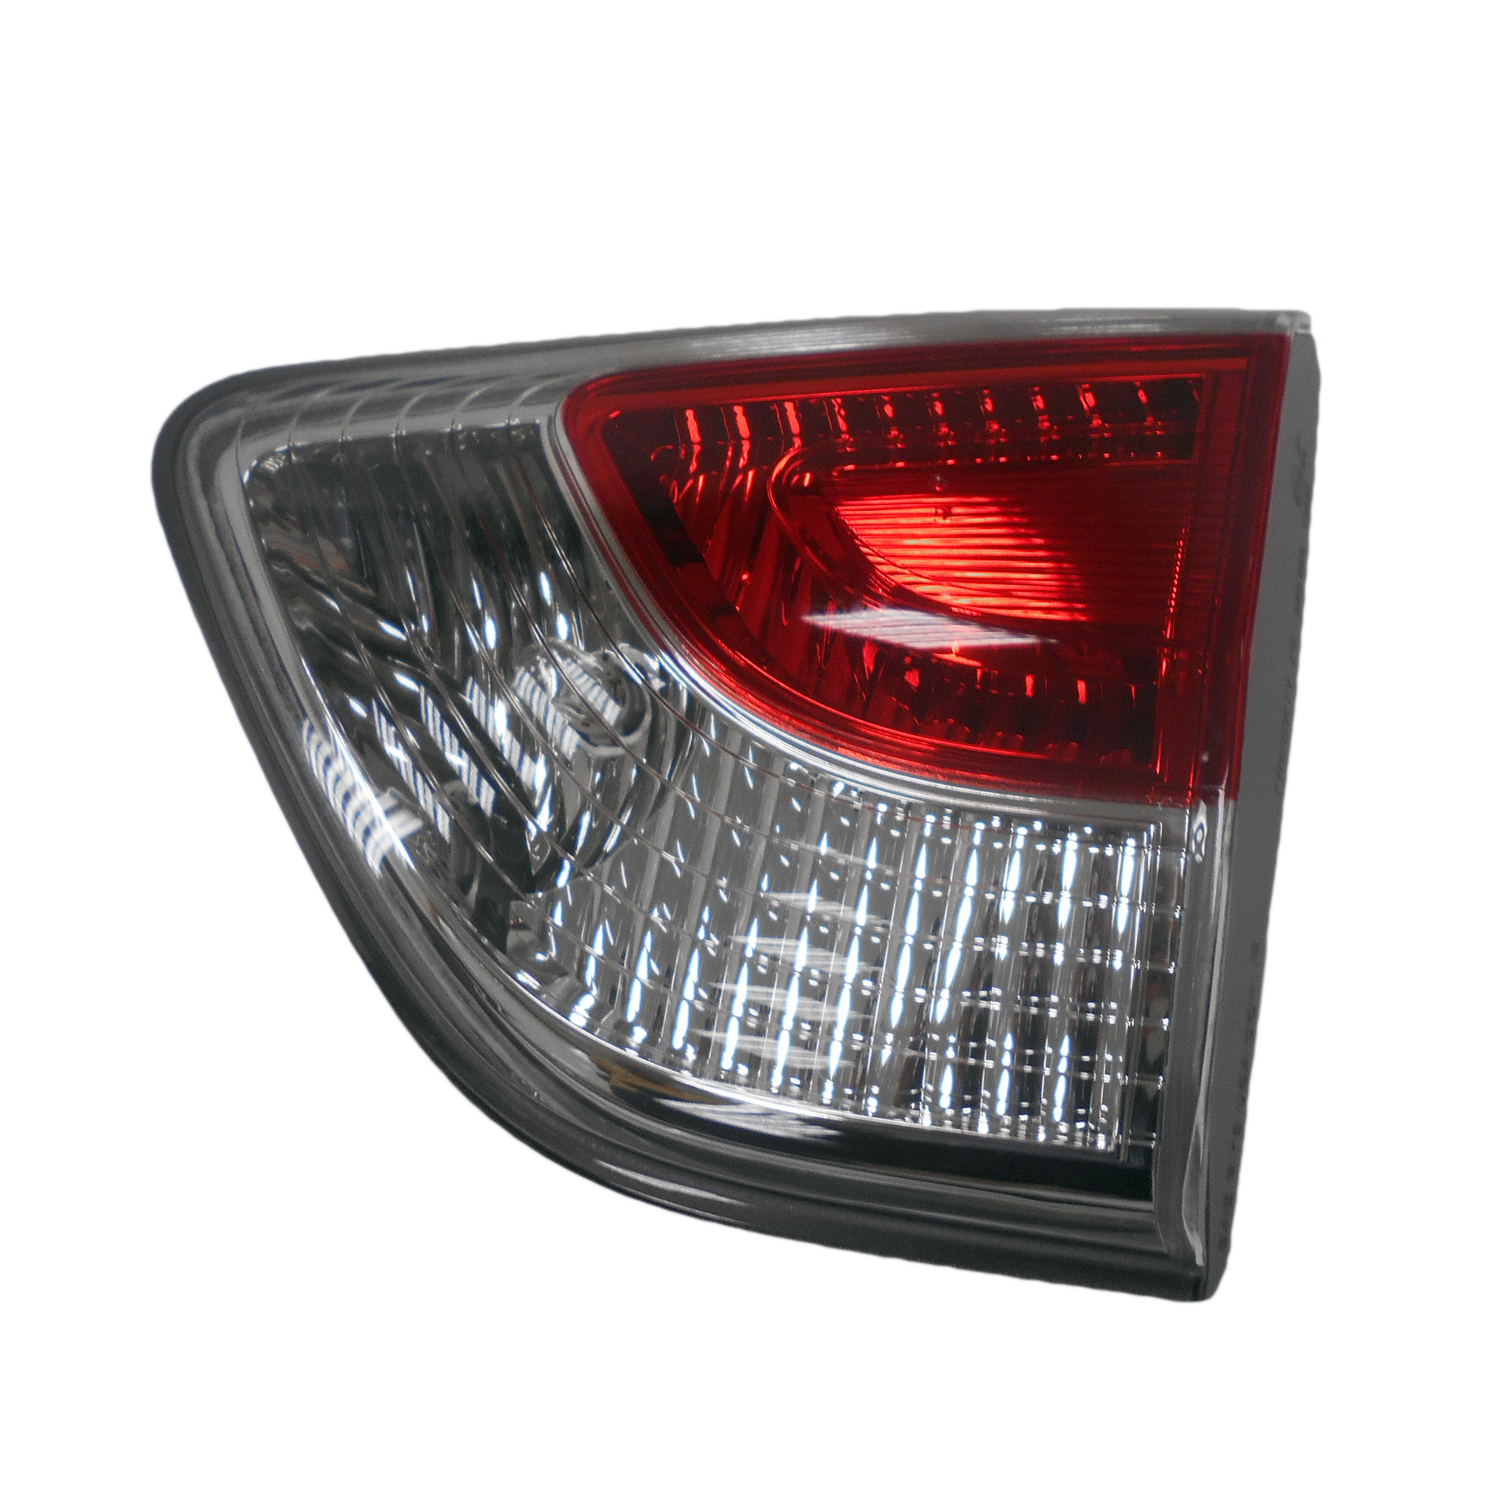 For Volvo S60 2011-2014 Passenger Right Outer Taillight OEM Automative Lighting